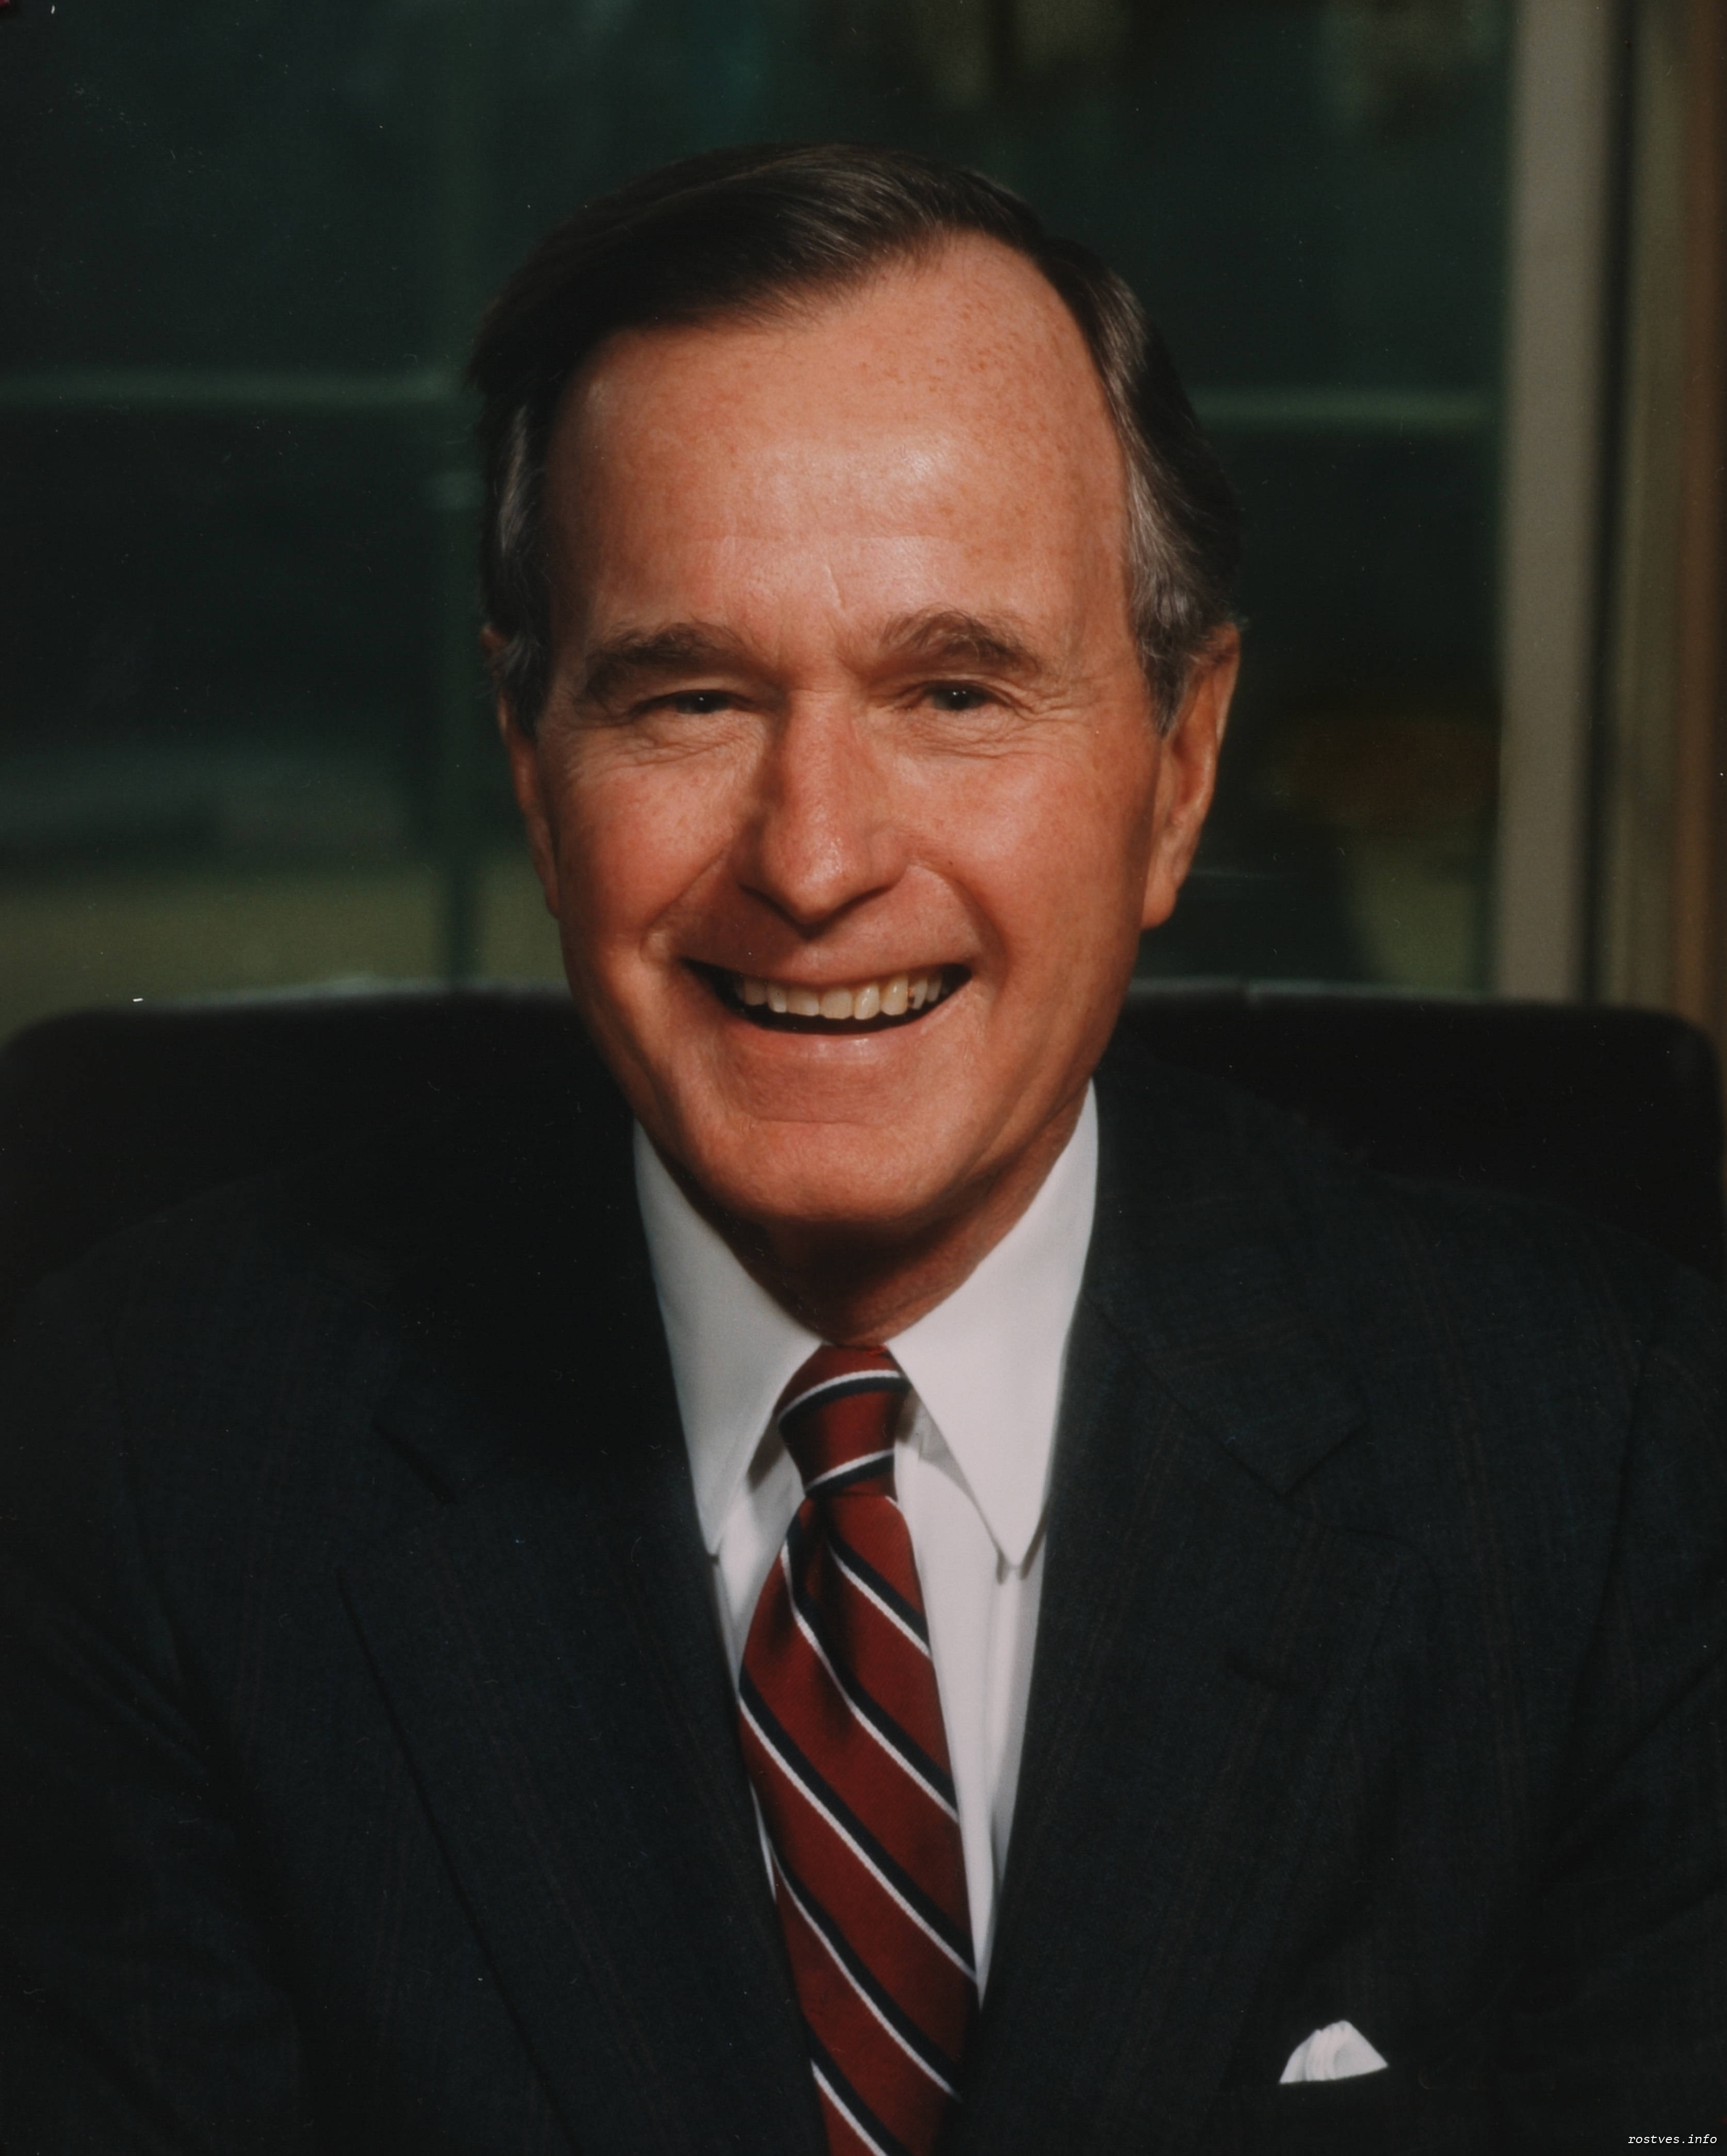 a biography of george w bush born in new haven National first ladies' library's biography for laura bush november 5 to george w bush, born 1946, july 6, new haven, connecticut, oil businessman.